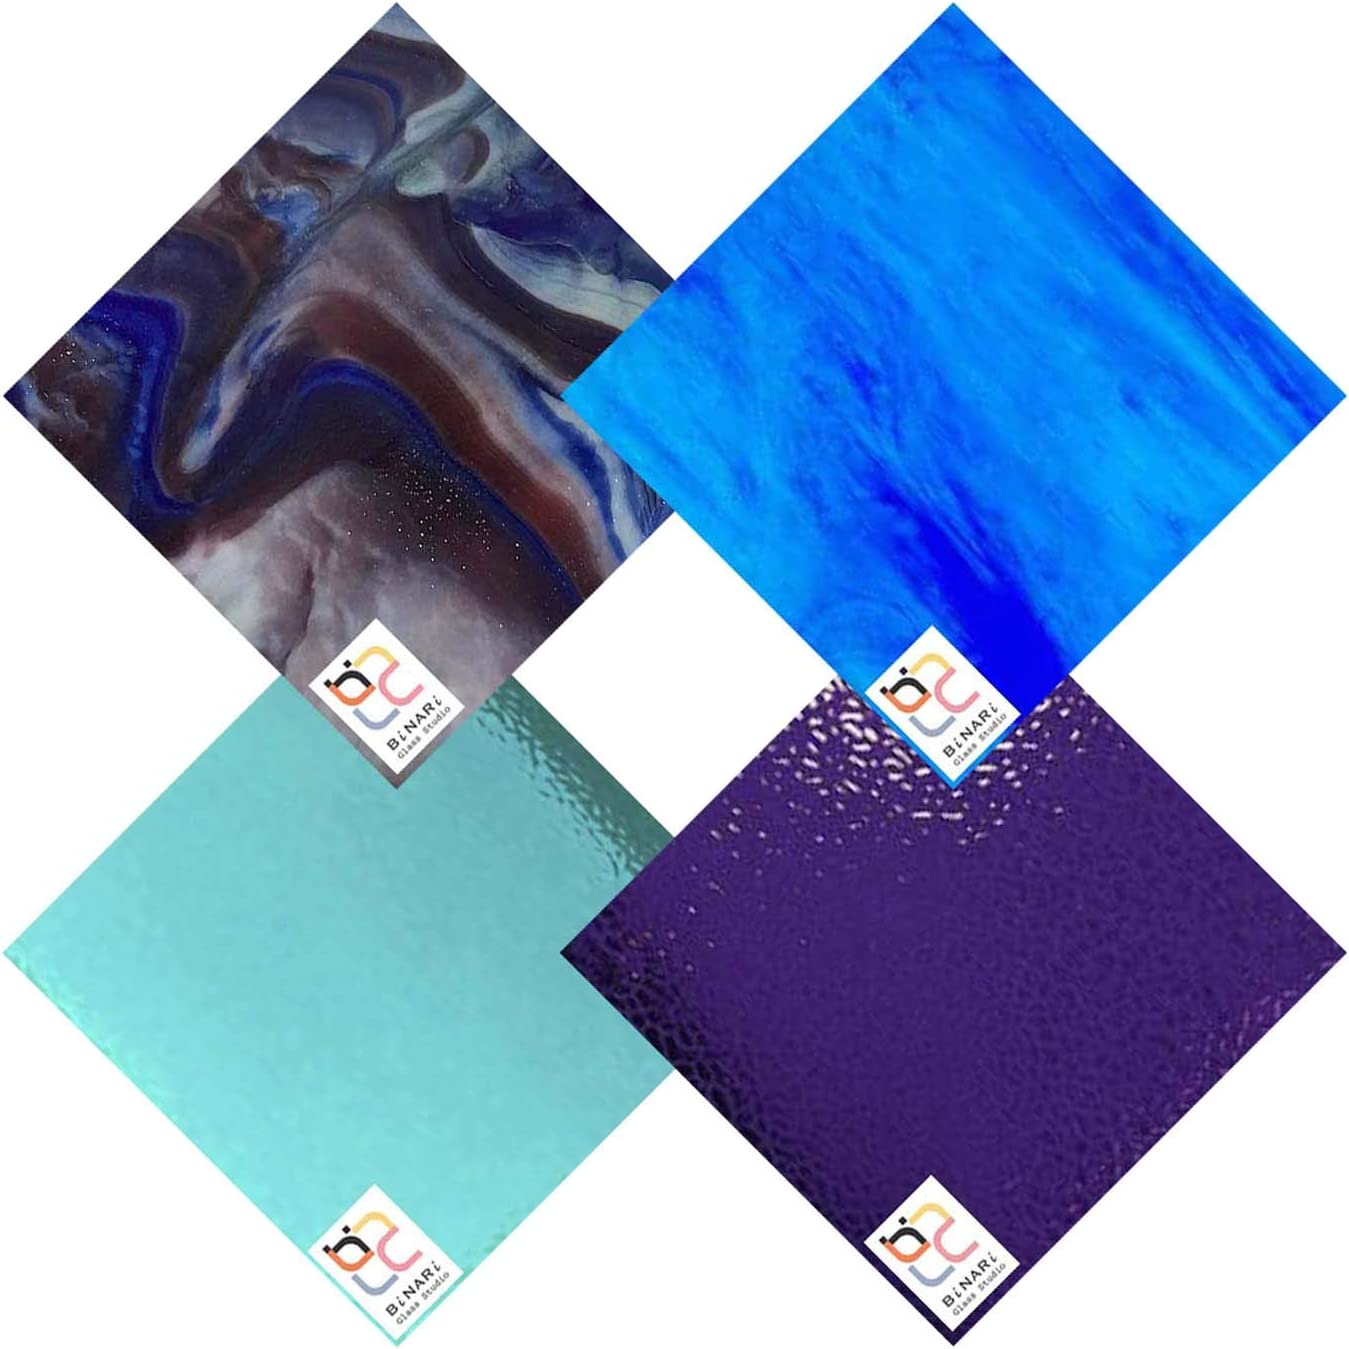 Finally resale start Wissmach 4 Sheet Max 63% OFF Mixed Color Variety Glass Stained Blue Pu Pack